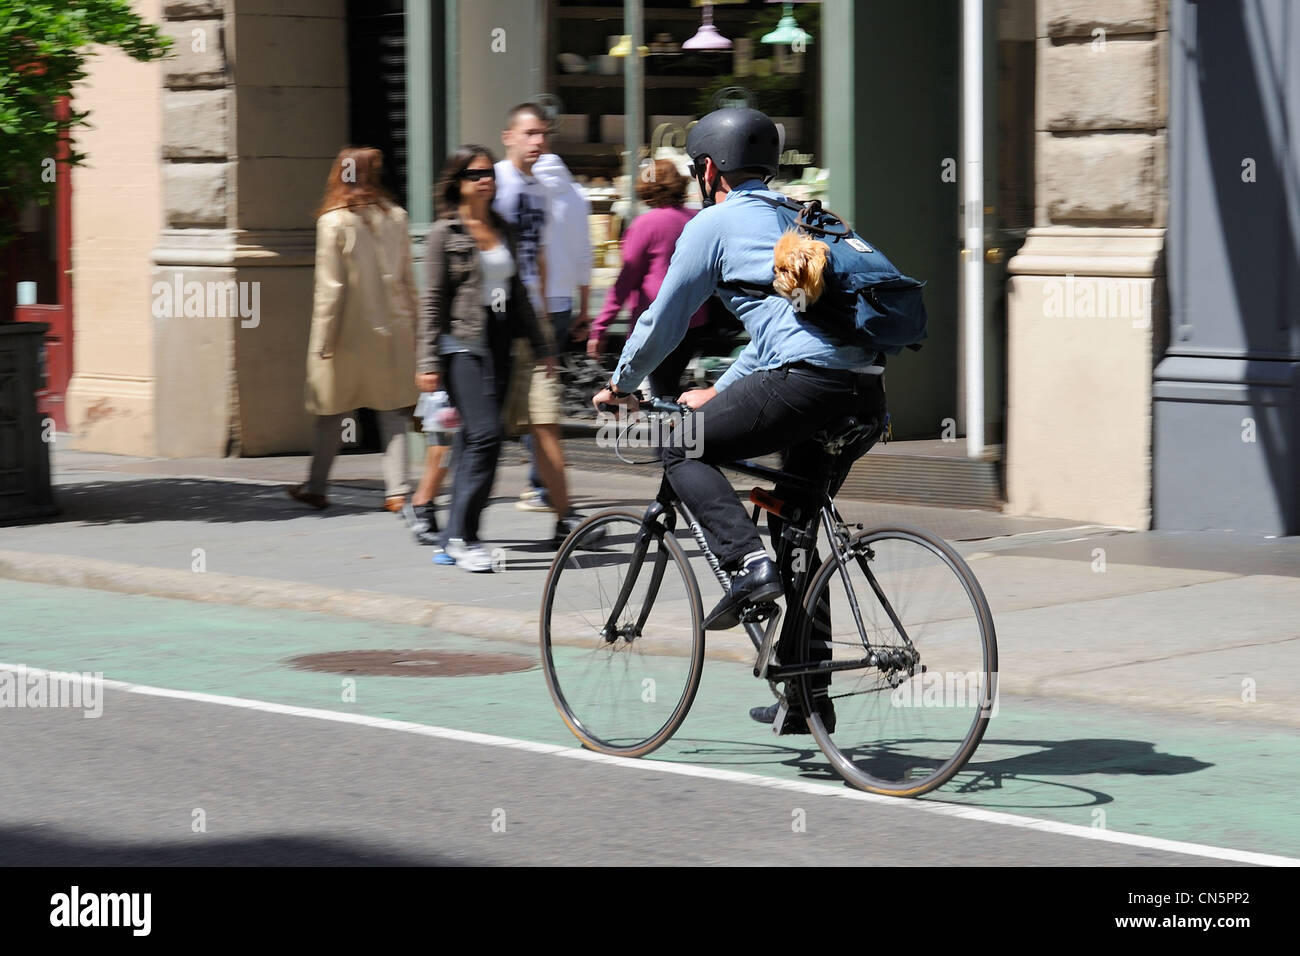 United States, New York, Manhattan, Soho, cyclist carrying his dog on Prince Street - Stock Image